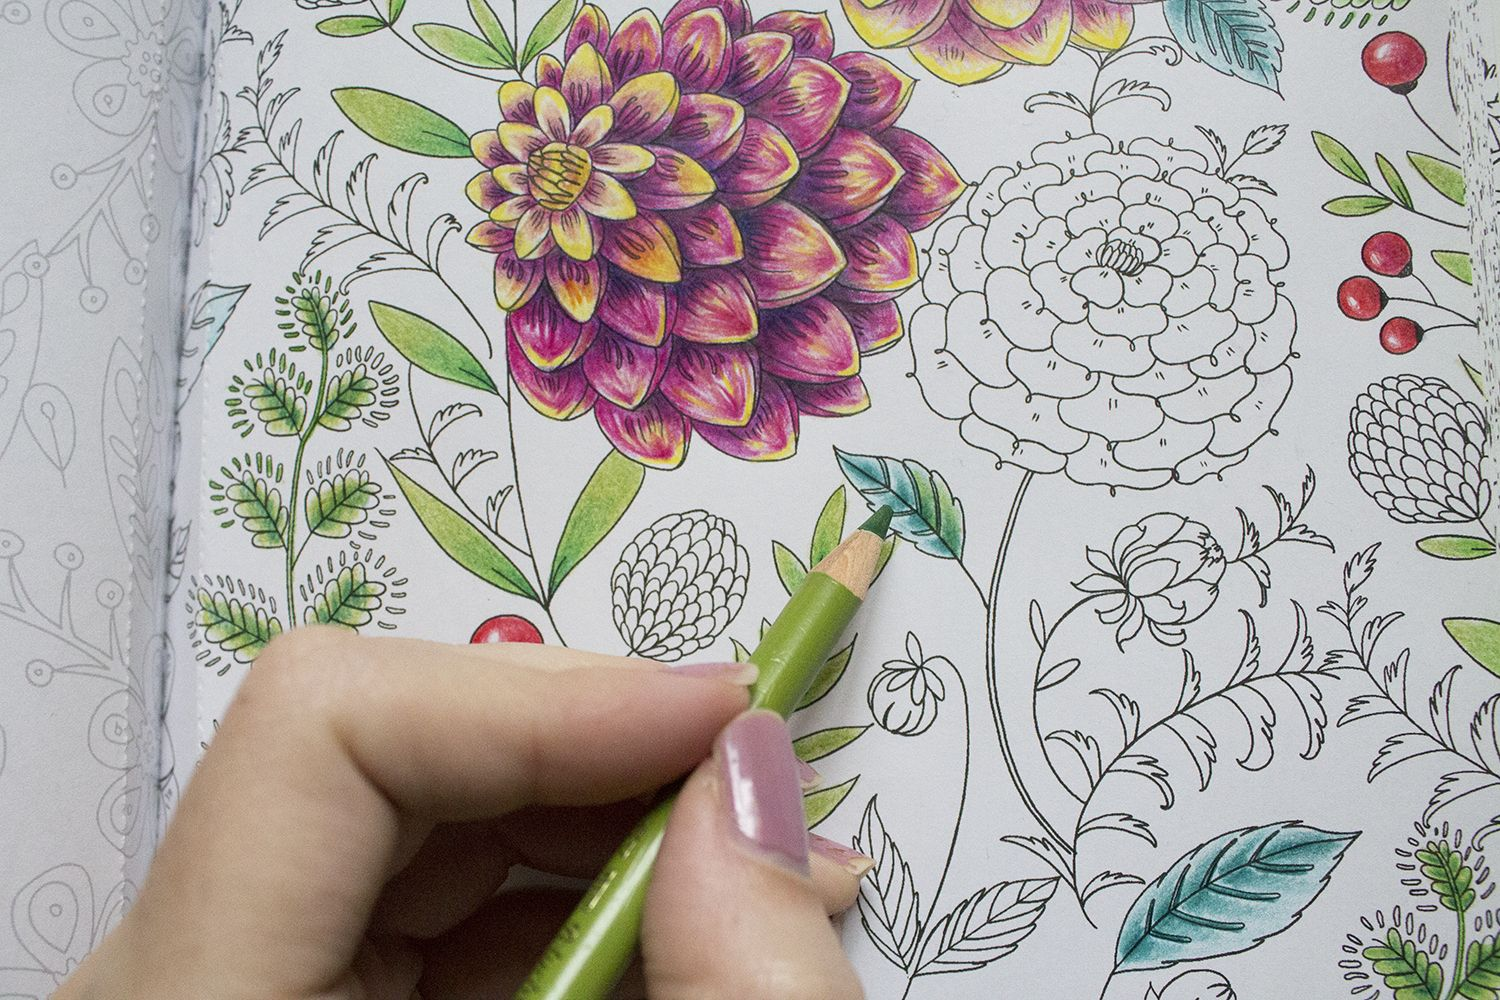 Pin By Kirsten Kuus On Creabea Hobby S Coloring Books Color Pencil Art Colored Pencil Techniques